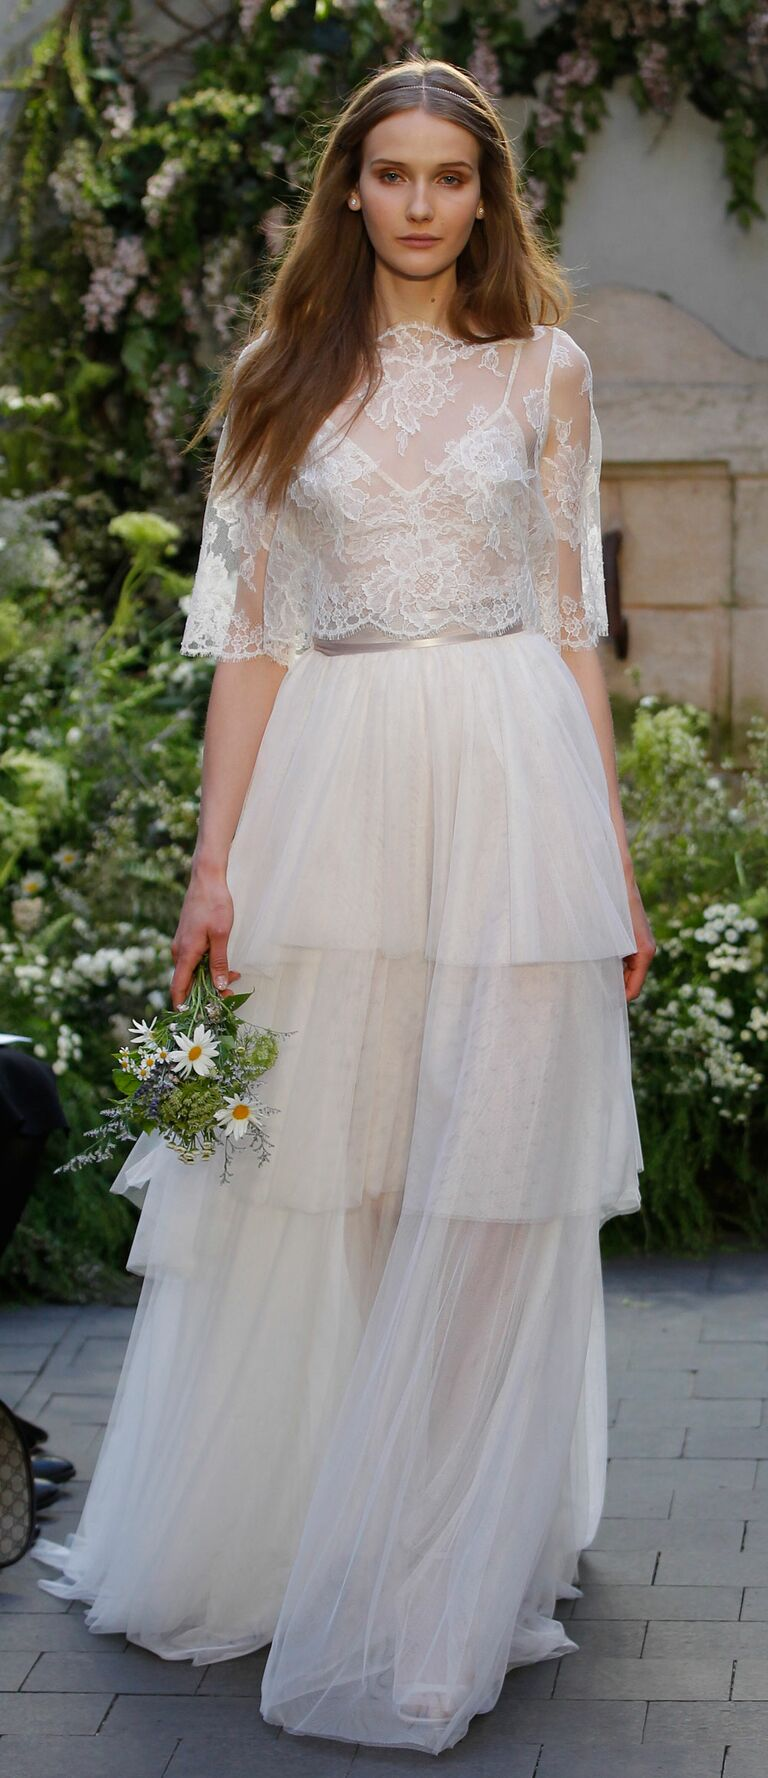 Monique lhuillier spring 2017 collection bridal fashion week photos monique lhuillier spring 2017 wedding dress with chantilly lace camisole and blush tulle tiered ombrellifo Image collections